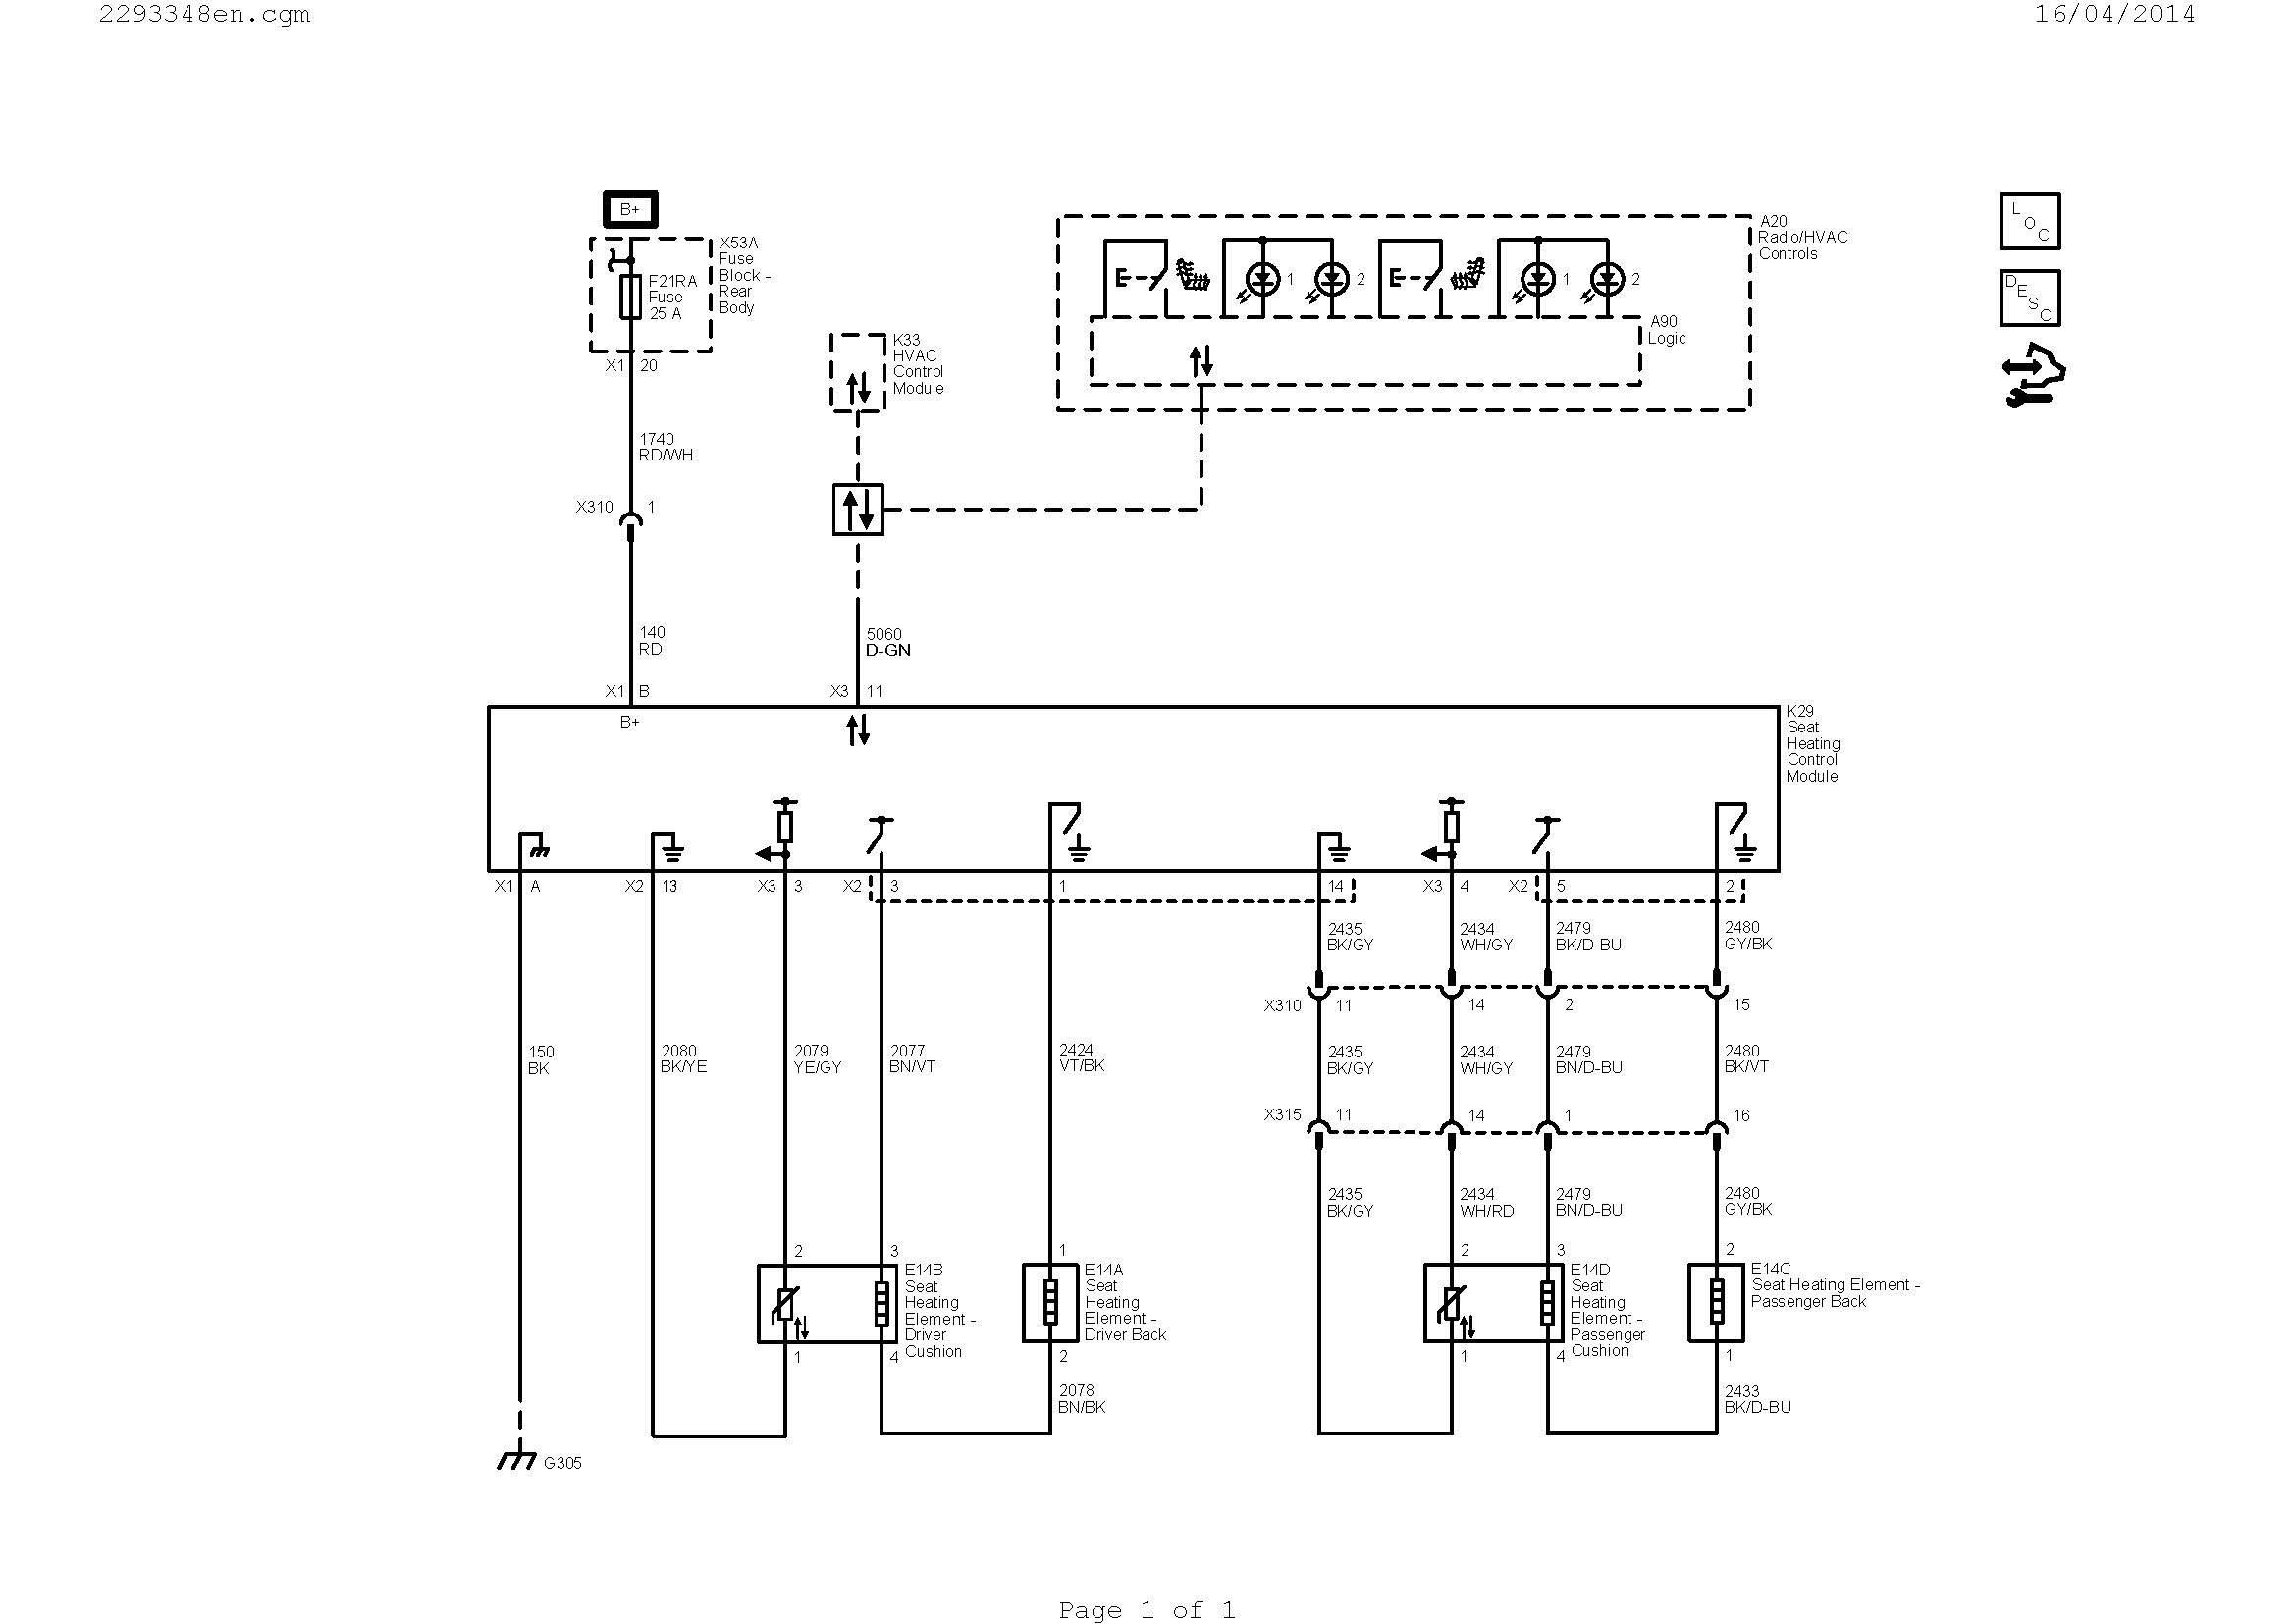 bose a20 wiring diagram Download-Wiring Diagram for Relay Inspirationa Wiring Diagram Relay Inspirationa Wire Diagram for Best Hvac 13-q